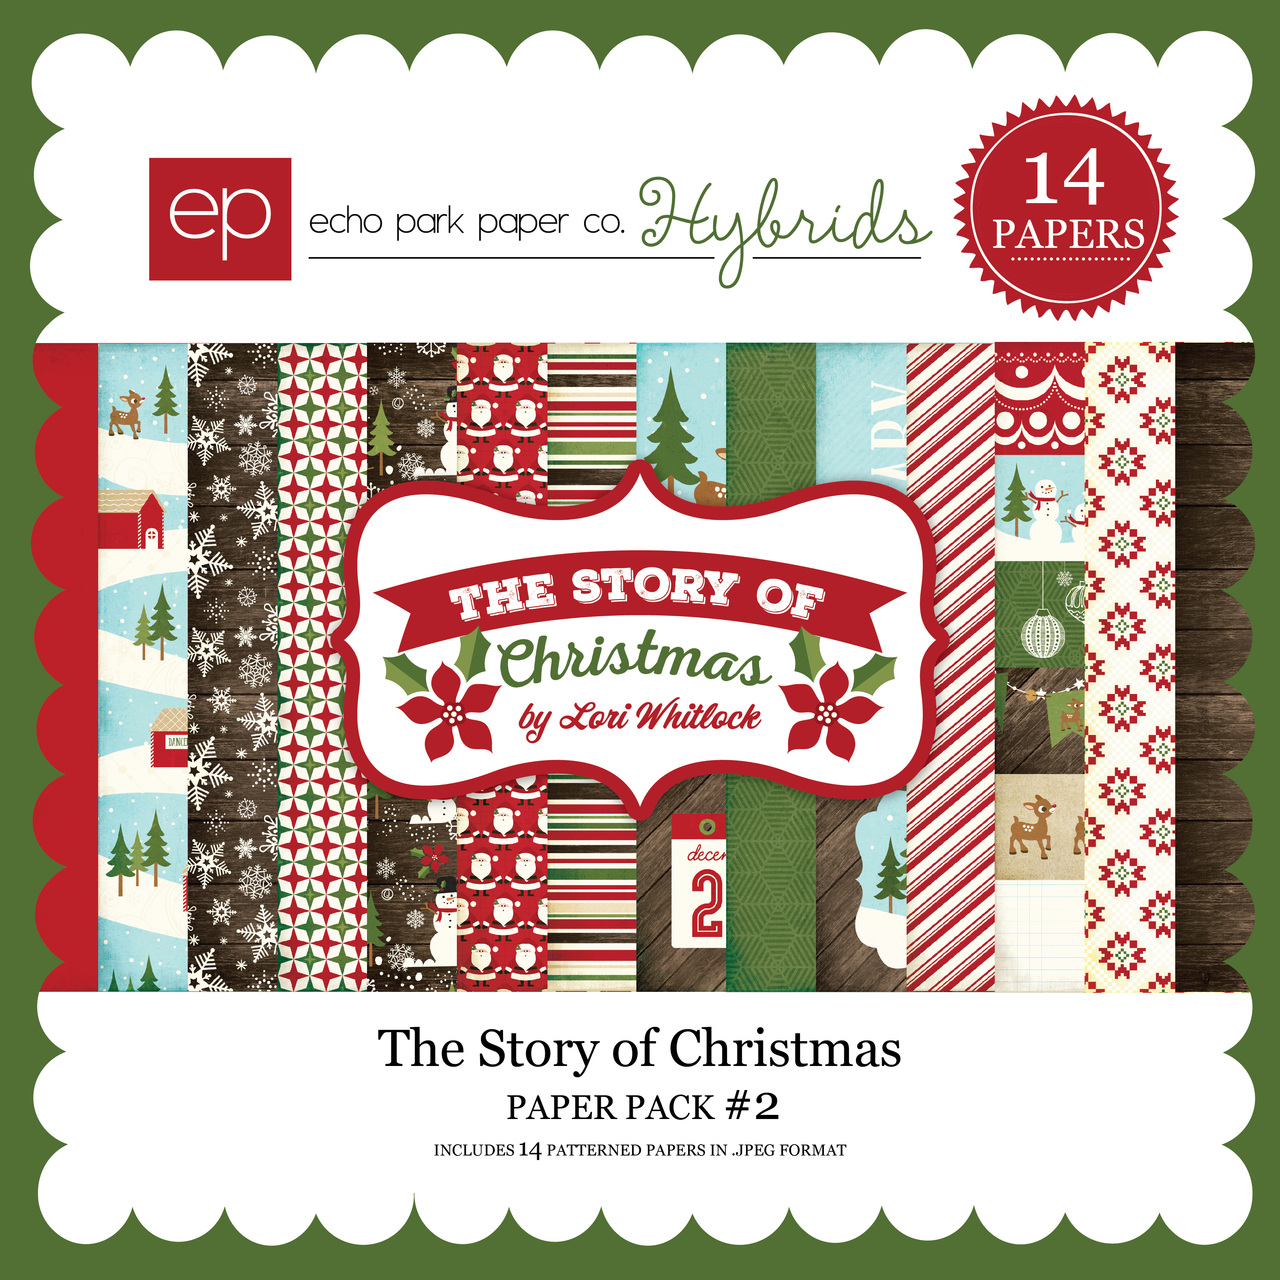 The Story of Christmas Paper Pack 2